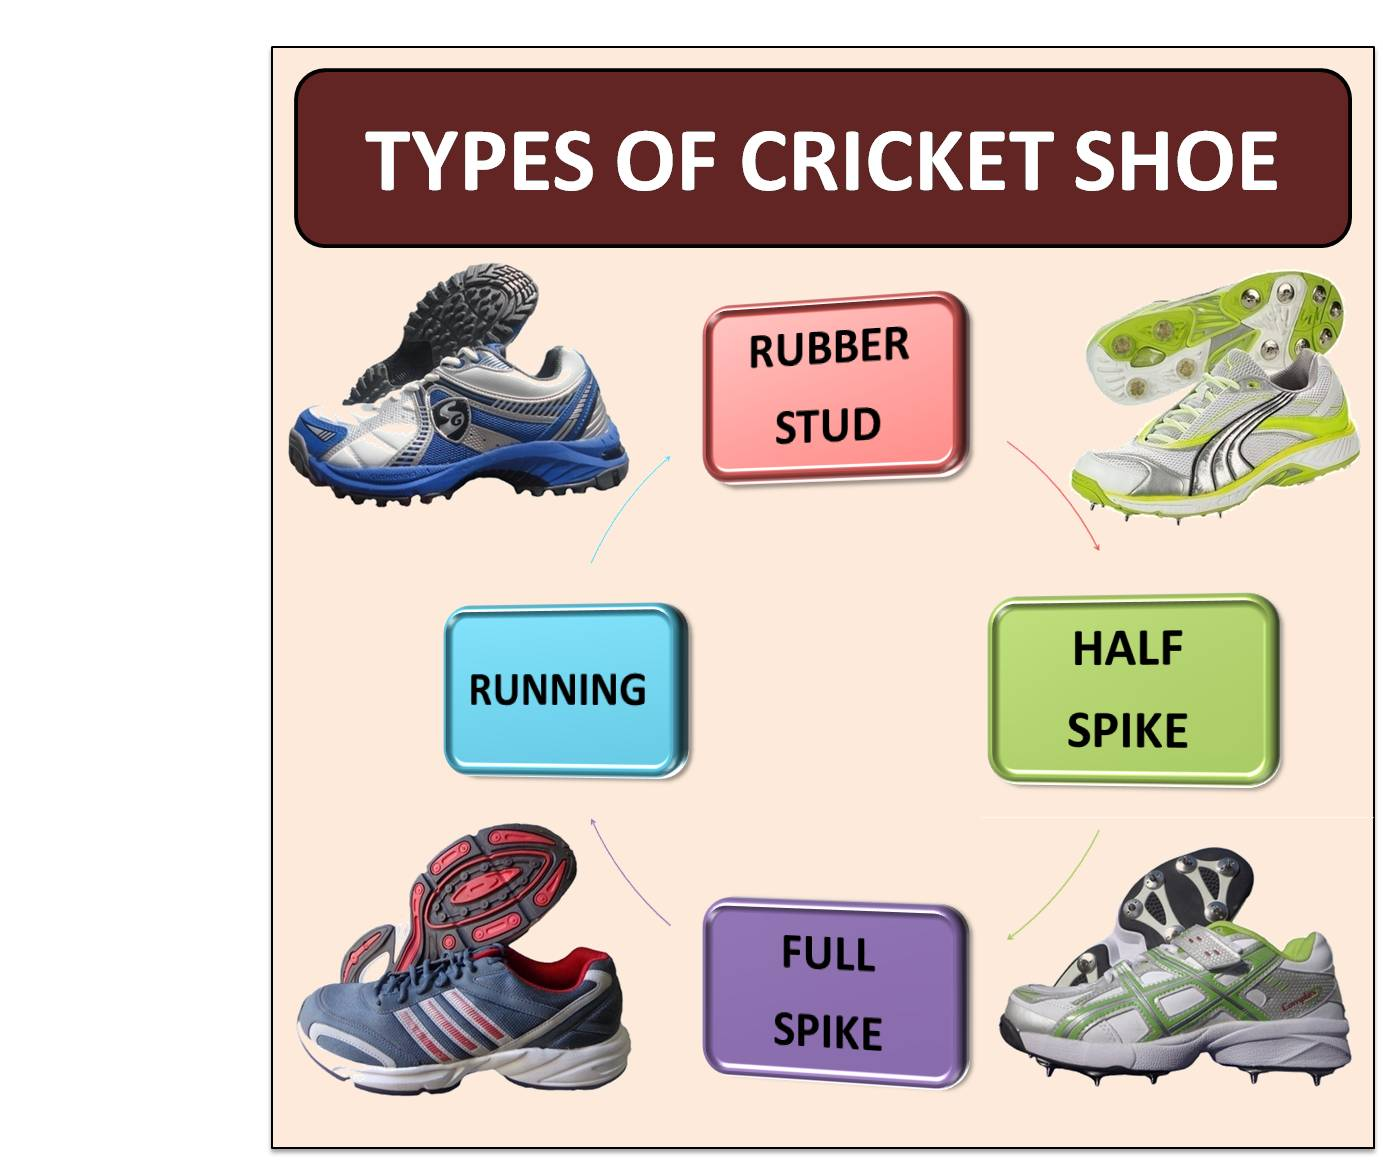 Typers of cricket shoe